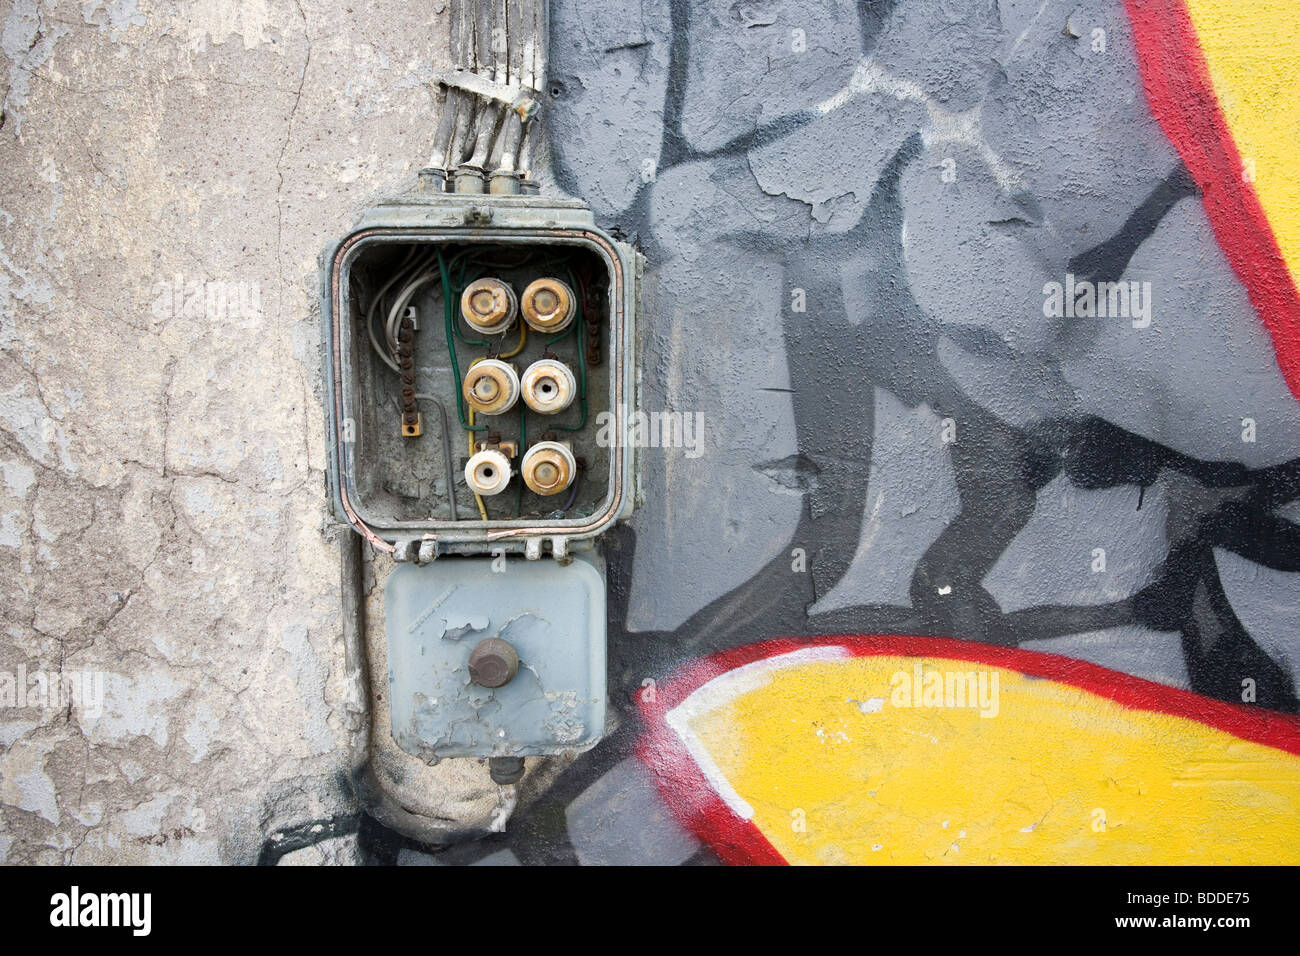 hight resolution of old fuse box on abandoned warehouse wall stock image